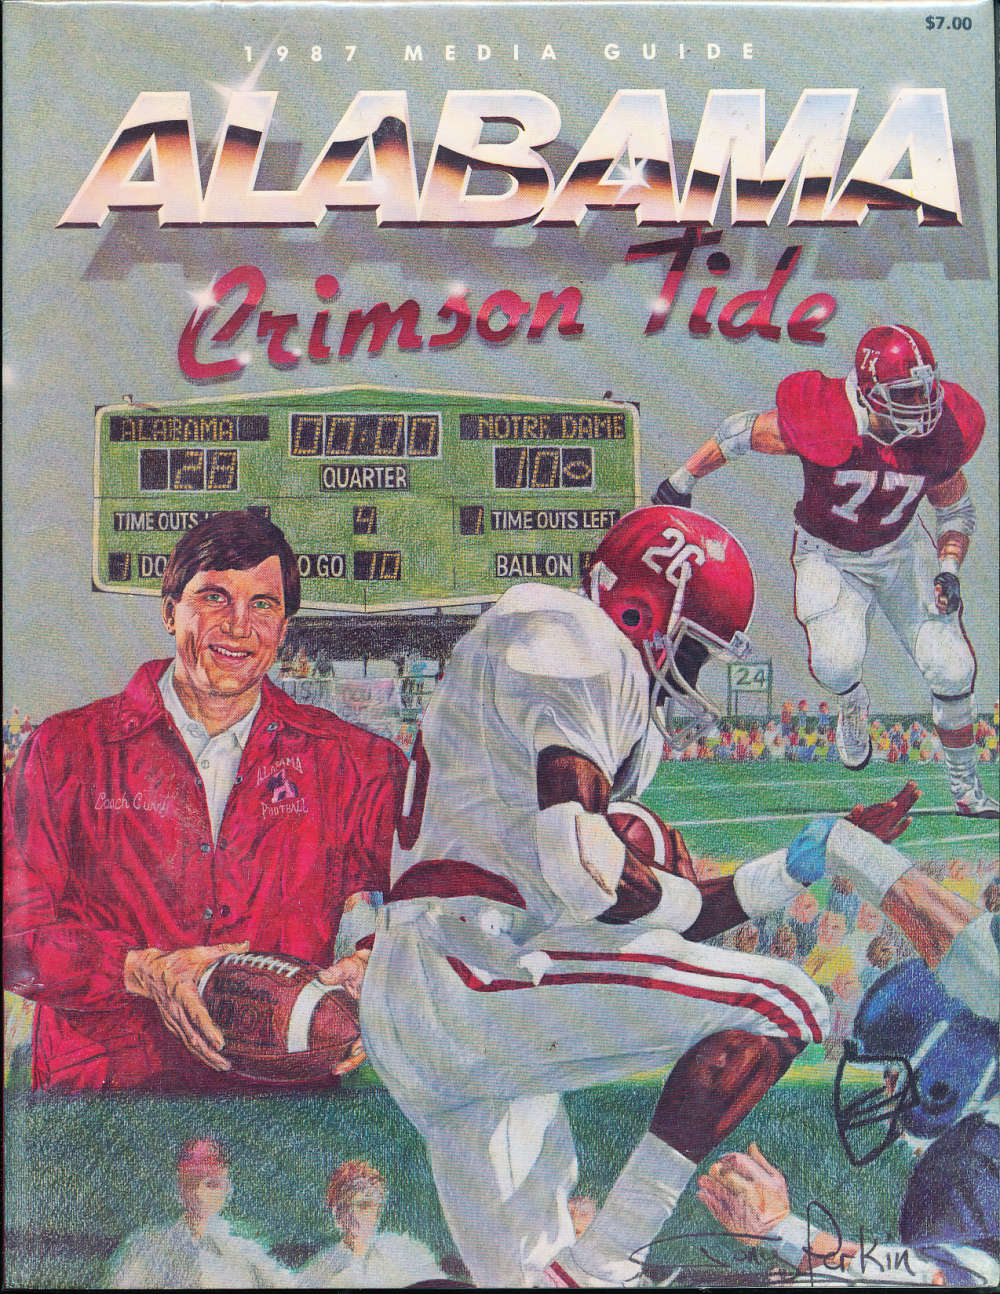 1987 University of Alabama football media guide